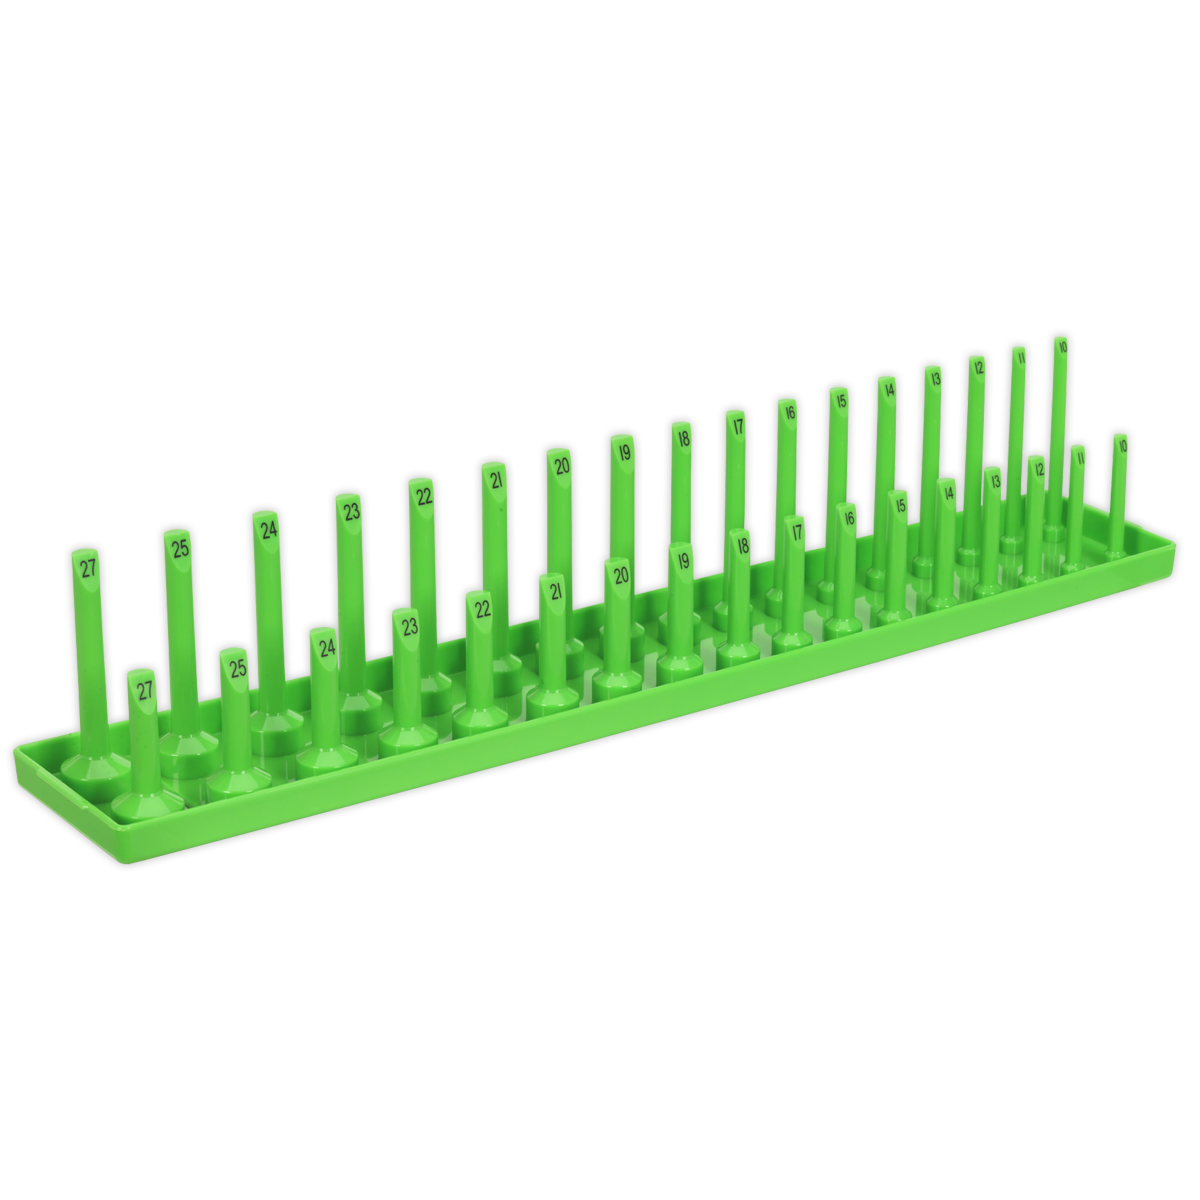 """Socket Holder 1/2""""Sq Drive 10-27mm Hi-Vis Green   Allows you to maintain a tidy workstation with sockets always to hand.   toolforce.ie"""